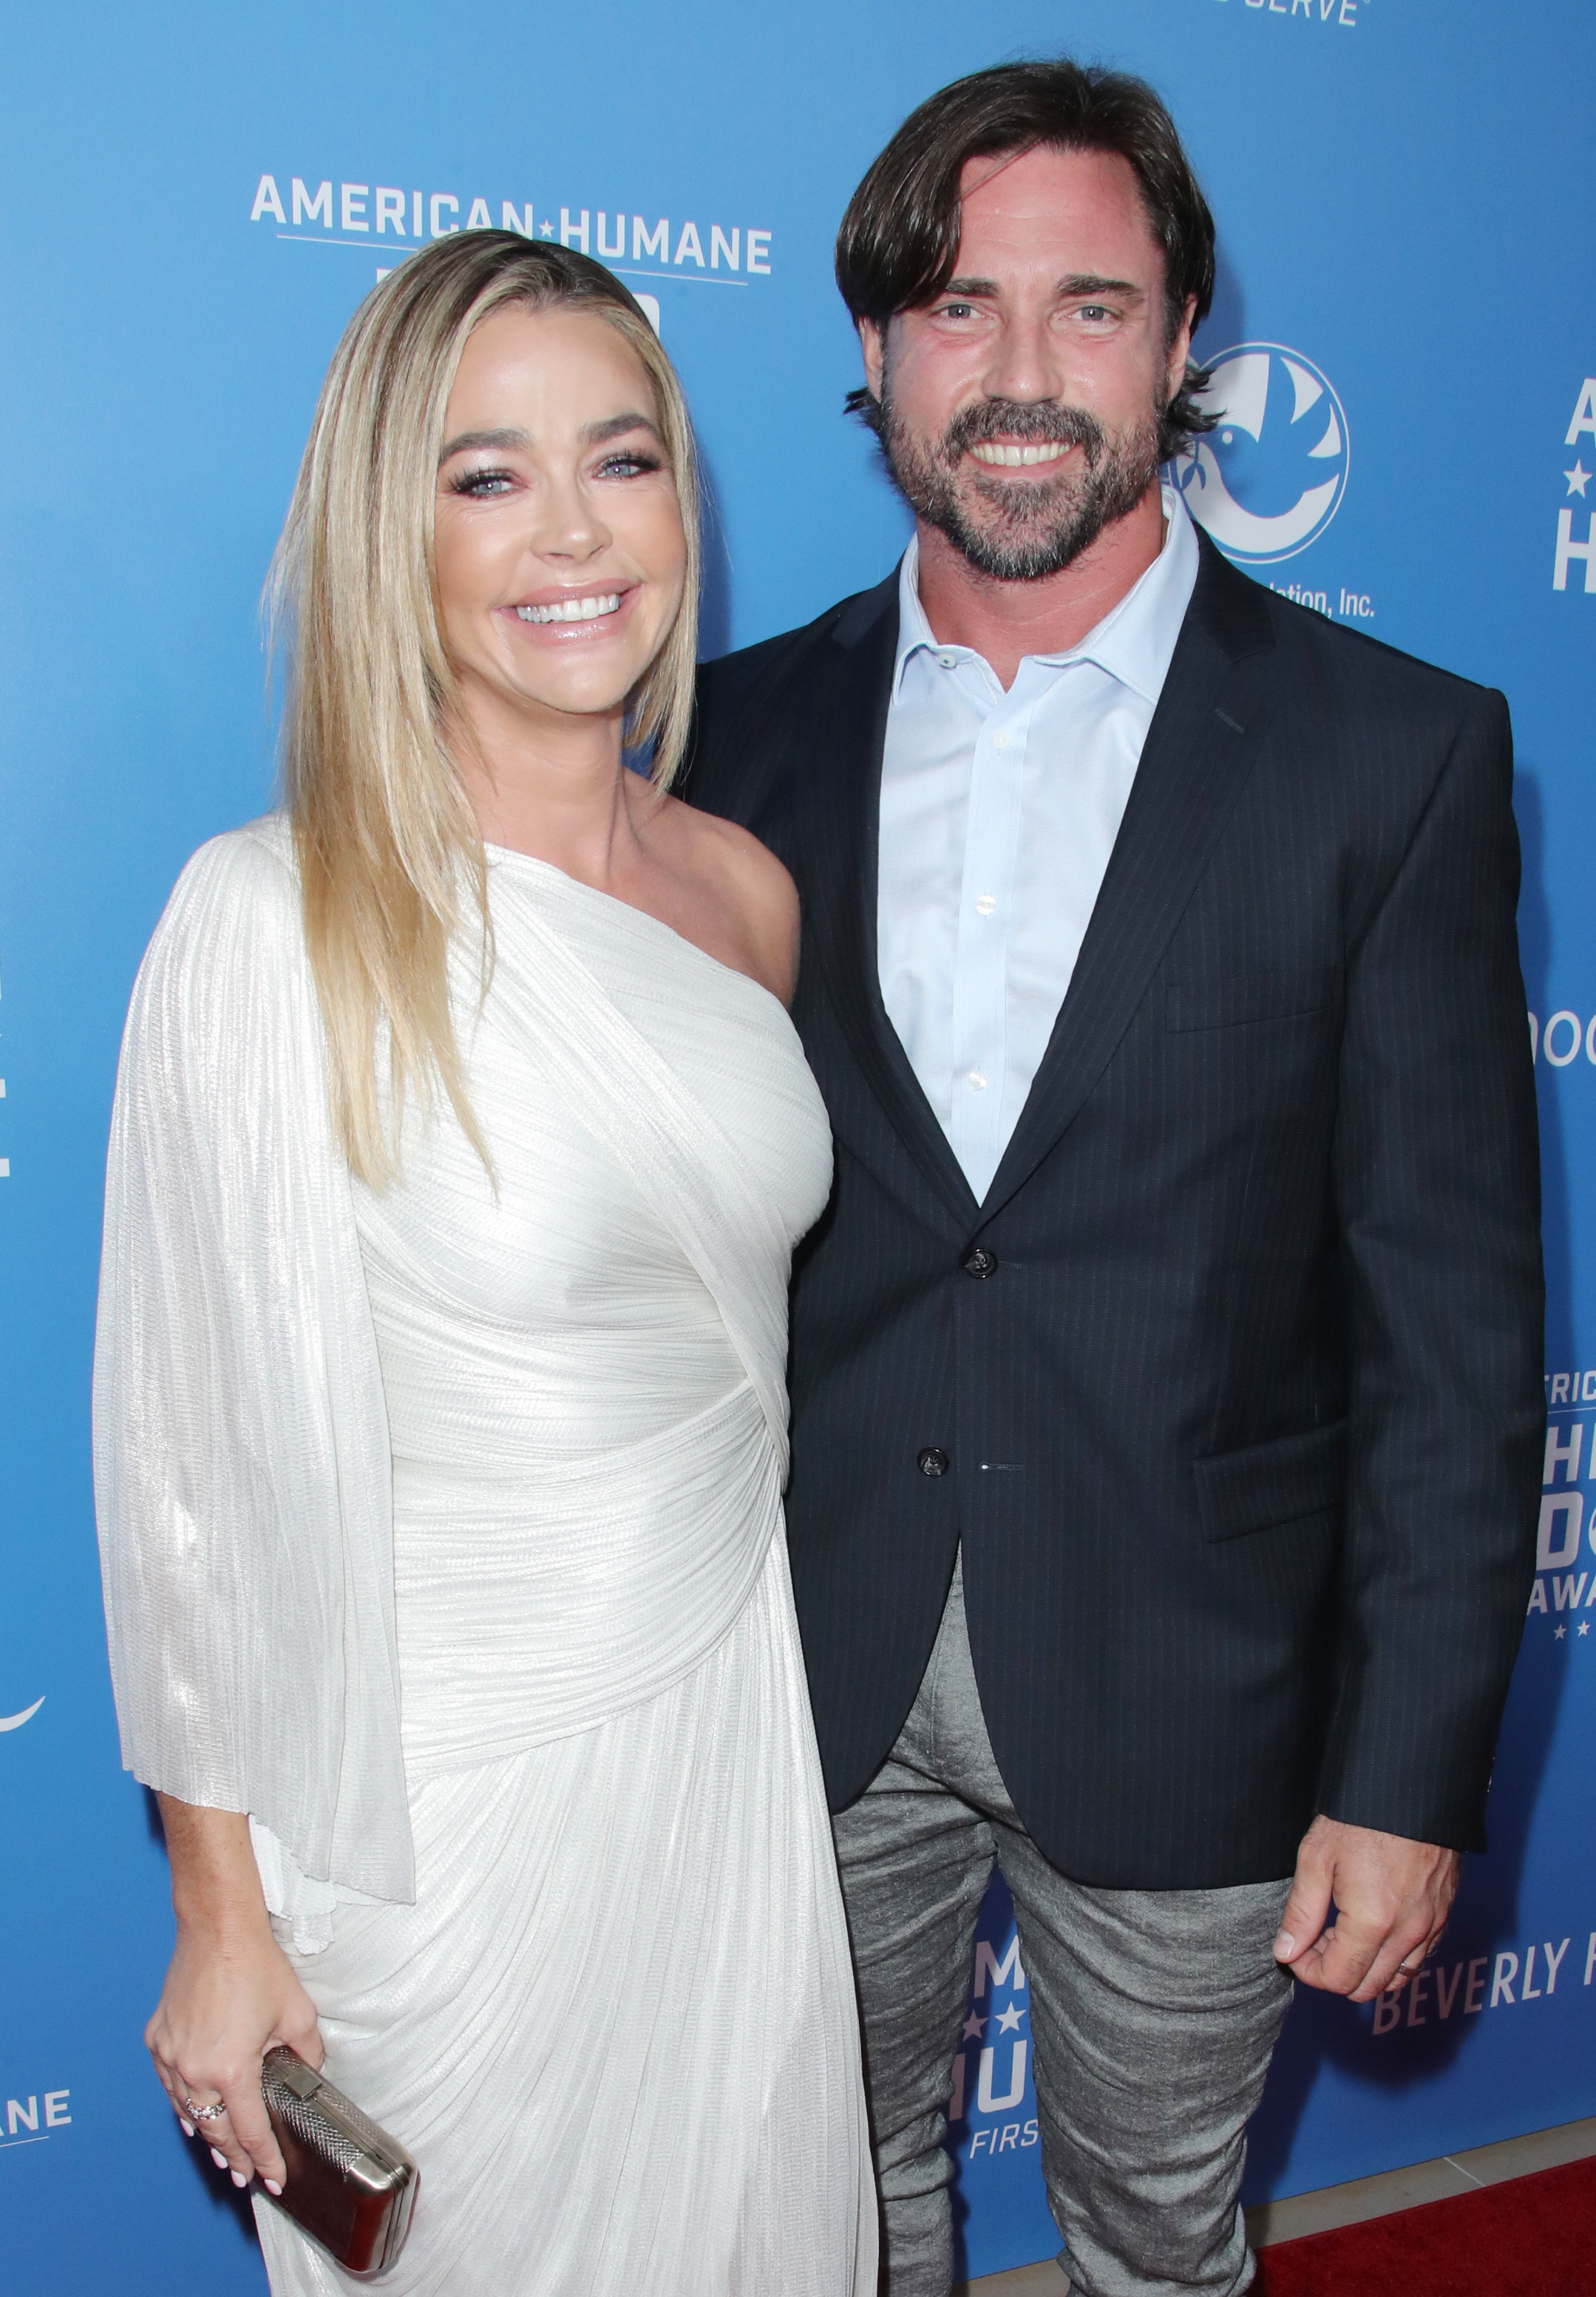 Denise Richards and husband Aaron Phypers attend the American Humane Dog Awards in Los Angeles on Sept. 29, 2018.